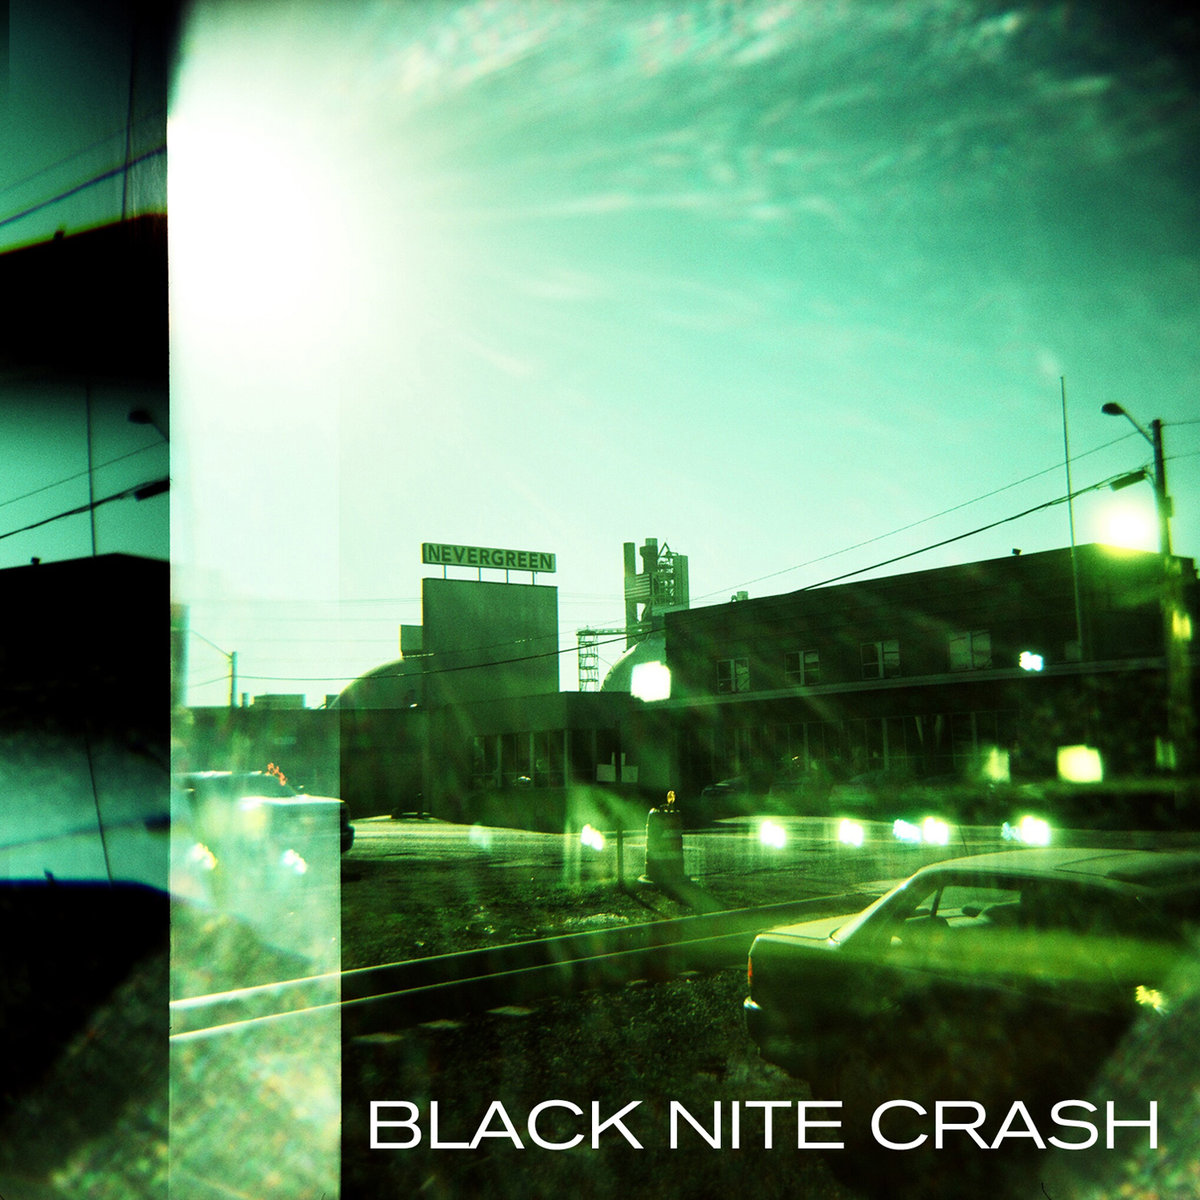 Black Nite Crash - Nevergreen